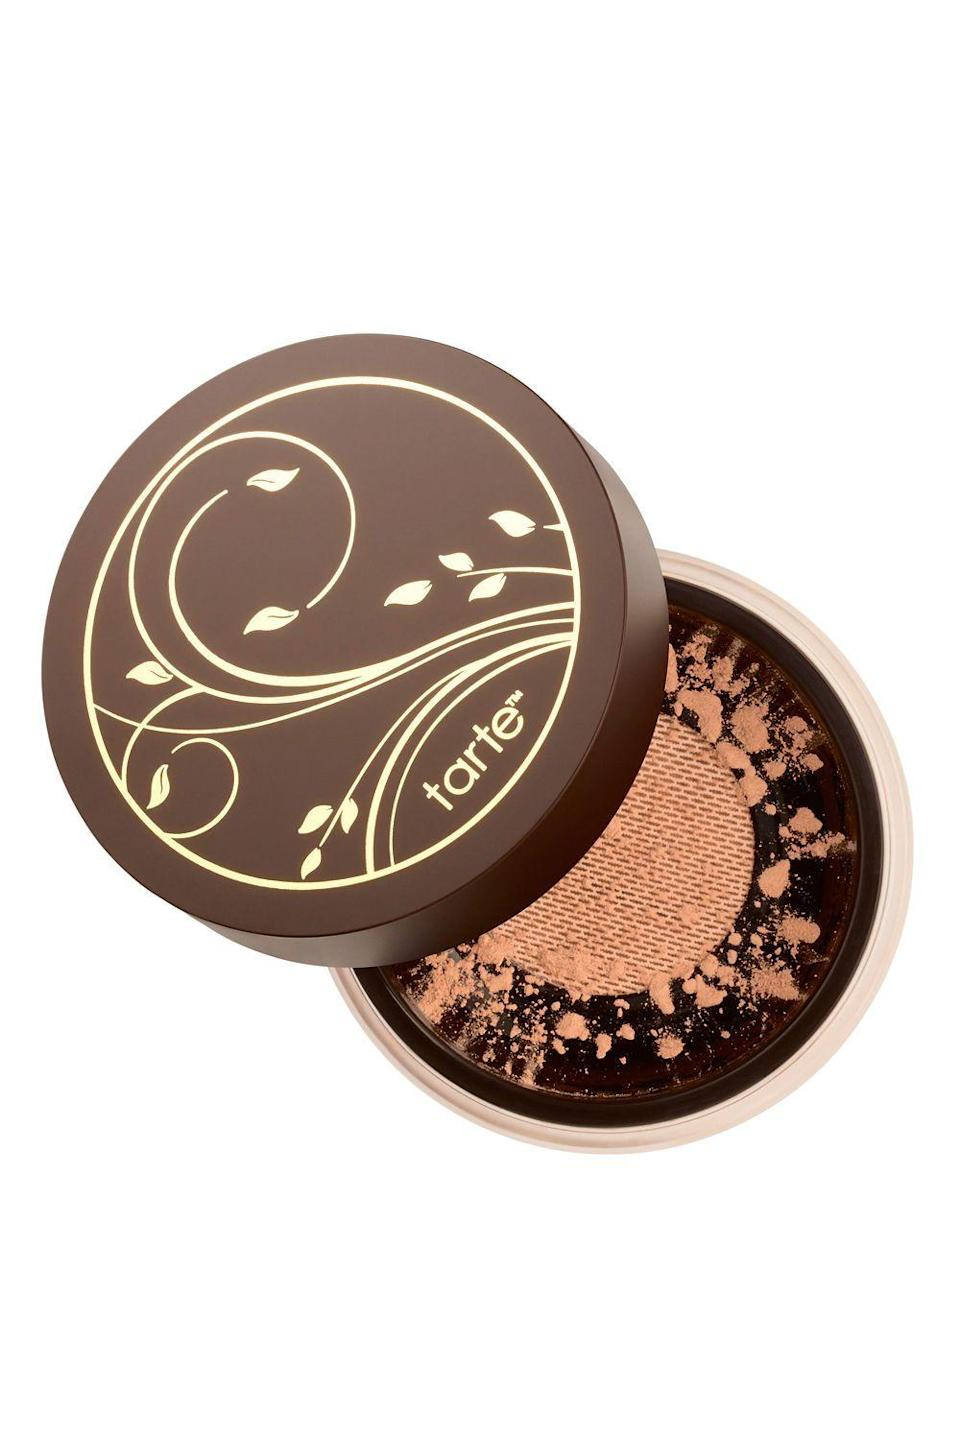 "<p><strong>Tarte Cosmetics</strong></p><p><strong>$36.00</strong></p><p><a href=""https://go.redirectingat.com?id=74968X1596630&url=https%3A%2F%2Fwww.ulta.com%2Famazonian-clay-full-coverage-airbrush-foundation%3FproductId%3DxlsImpprod5560095&sref=https%3A%2F%2Fwww.cosmopolitan.com%2Fstyle-beauty%2Fbeauty%2Fg33351245%2Fbest-natural-foundations%2F"" rel=""nofollow noopener"" target=""_blank"" data-ylk=""slk:Shop Now"" class=""link rapid-noclick-resp"">Shop Now</a></p><p>Don't let anyone tell you some B.S. about <a href=""https://www.cosmopolitan.com/style-beauty/beauty/g20126849/organic-skin-care-brands-products/"" rel=""nofollow noopener"" target=""_blank"" data-ylk=""slk:natural"" class=""link rapid-noclick-resp"">natural</a> foundations ""not lasting"", because this <a href=""https://www.cosmopolitan.com/style-beauty/beauty/g26757968/best-waterproof-foundation/"" rel=""nofollow noopener"" target=""_blank"" data-ylk=""slk:waterproof powder foundation"" class=""link rapid-noclick-resp"">waterproof powder foundation</a> from Tarte <strong>stays put on skin for a full 12 hours</strong>. It's made with gentle mineral pigments and oil-absorbing Amazonian clay to give skin a matte, airbrushed effect that lasts all damn day.</p>"